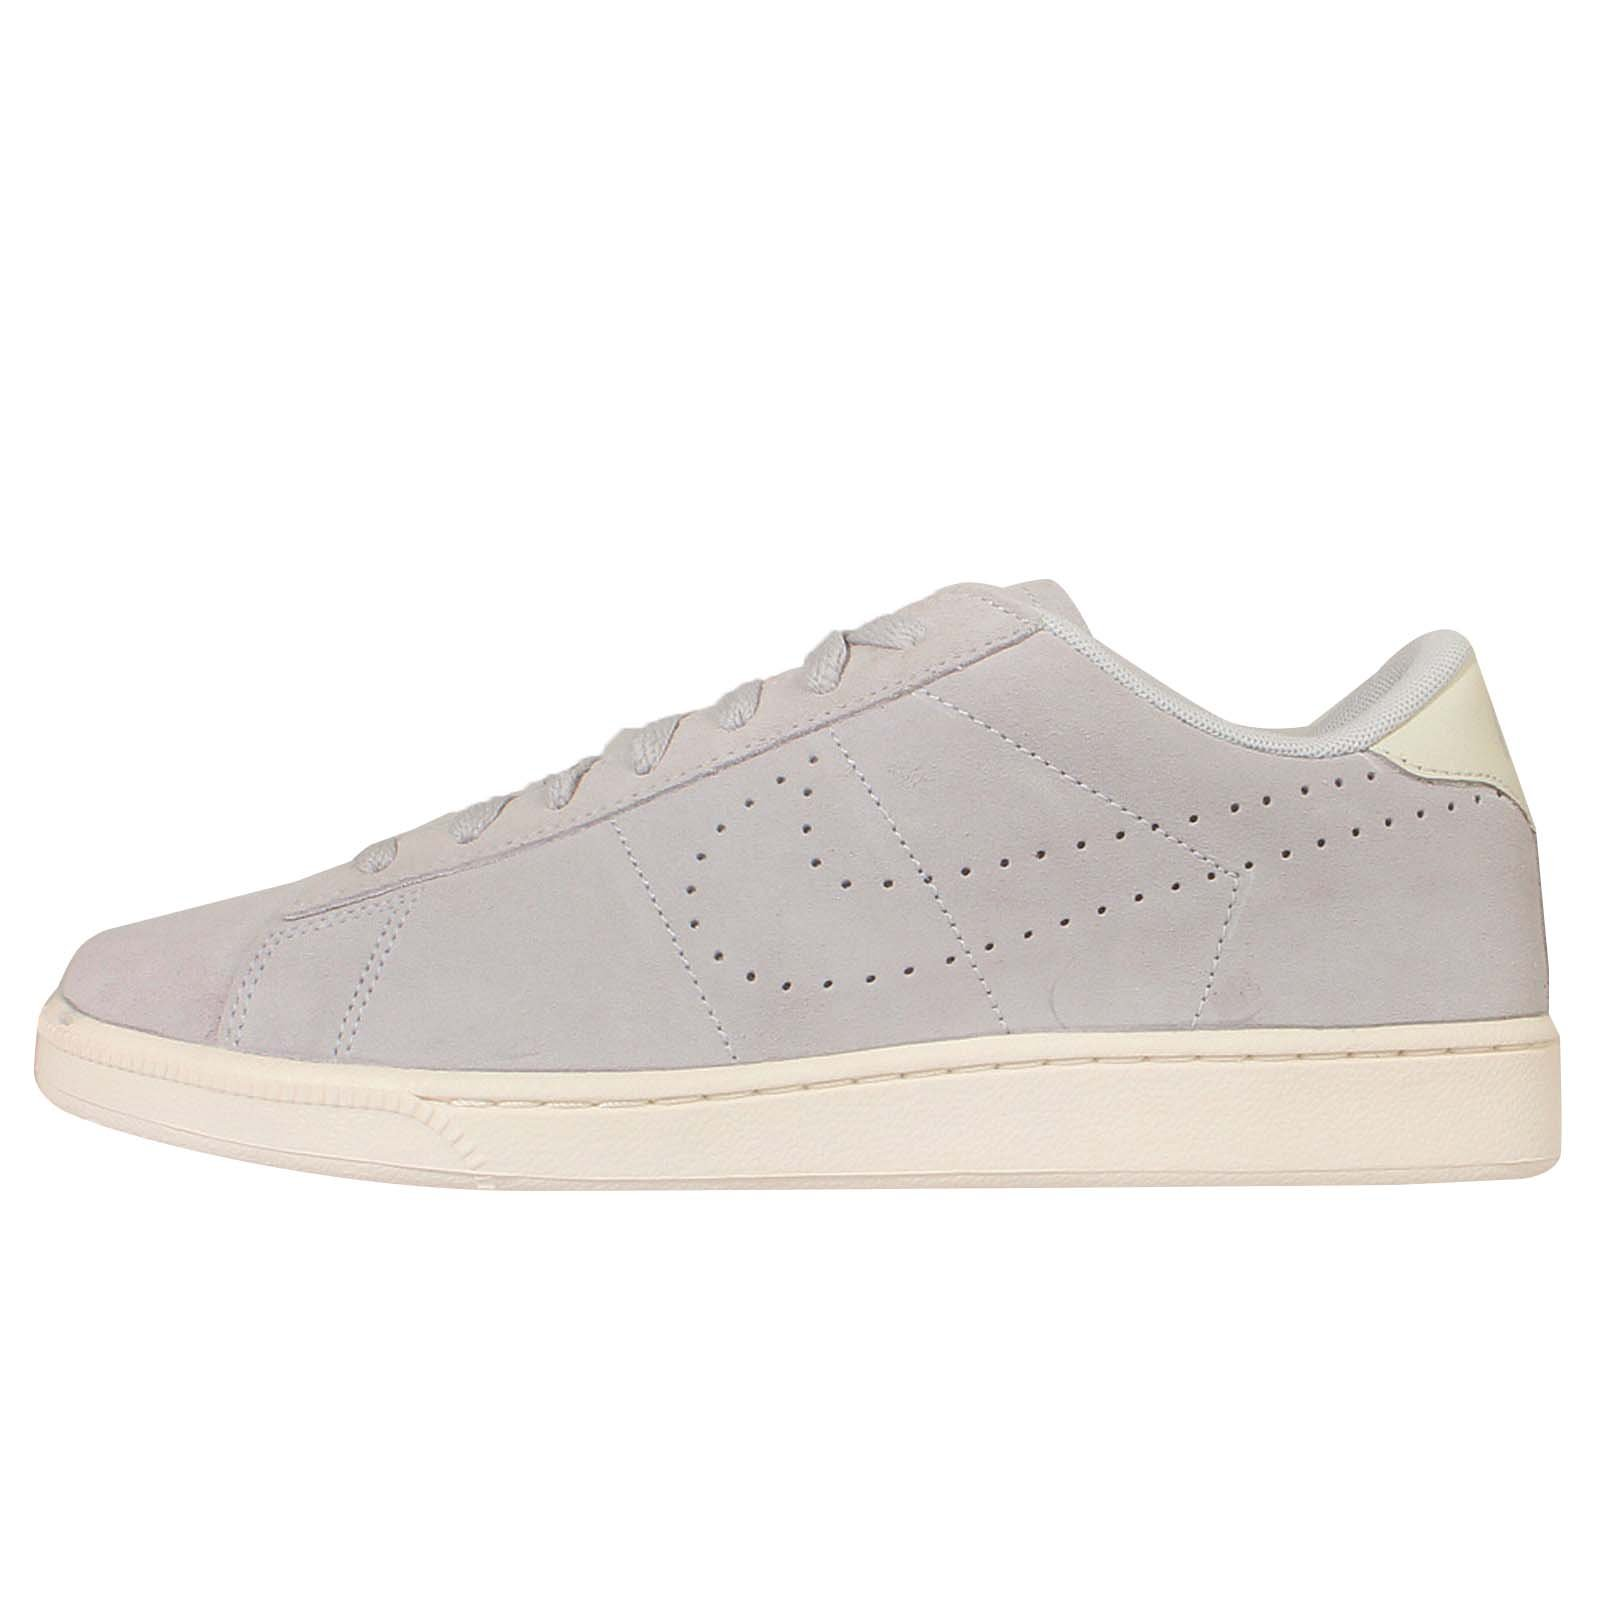 buy popular e2c40 d3dfe NIKE Tennis Classic CS Suede Mens Trainers 829351 Sneakers Shoes (US 11,  Metallic Platinum Ivory 001). Product main image